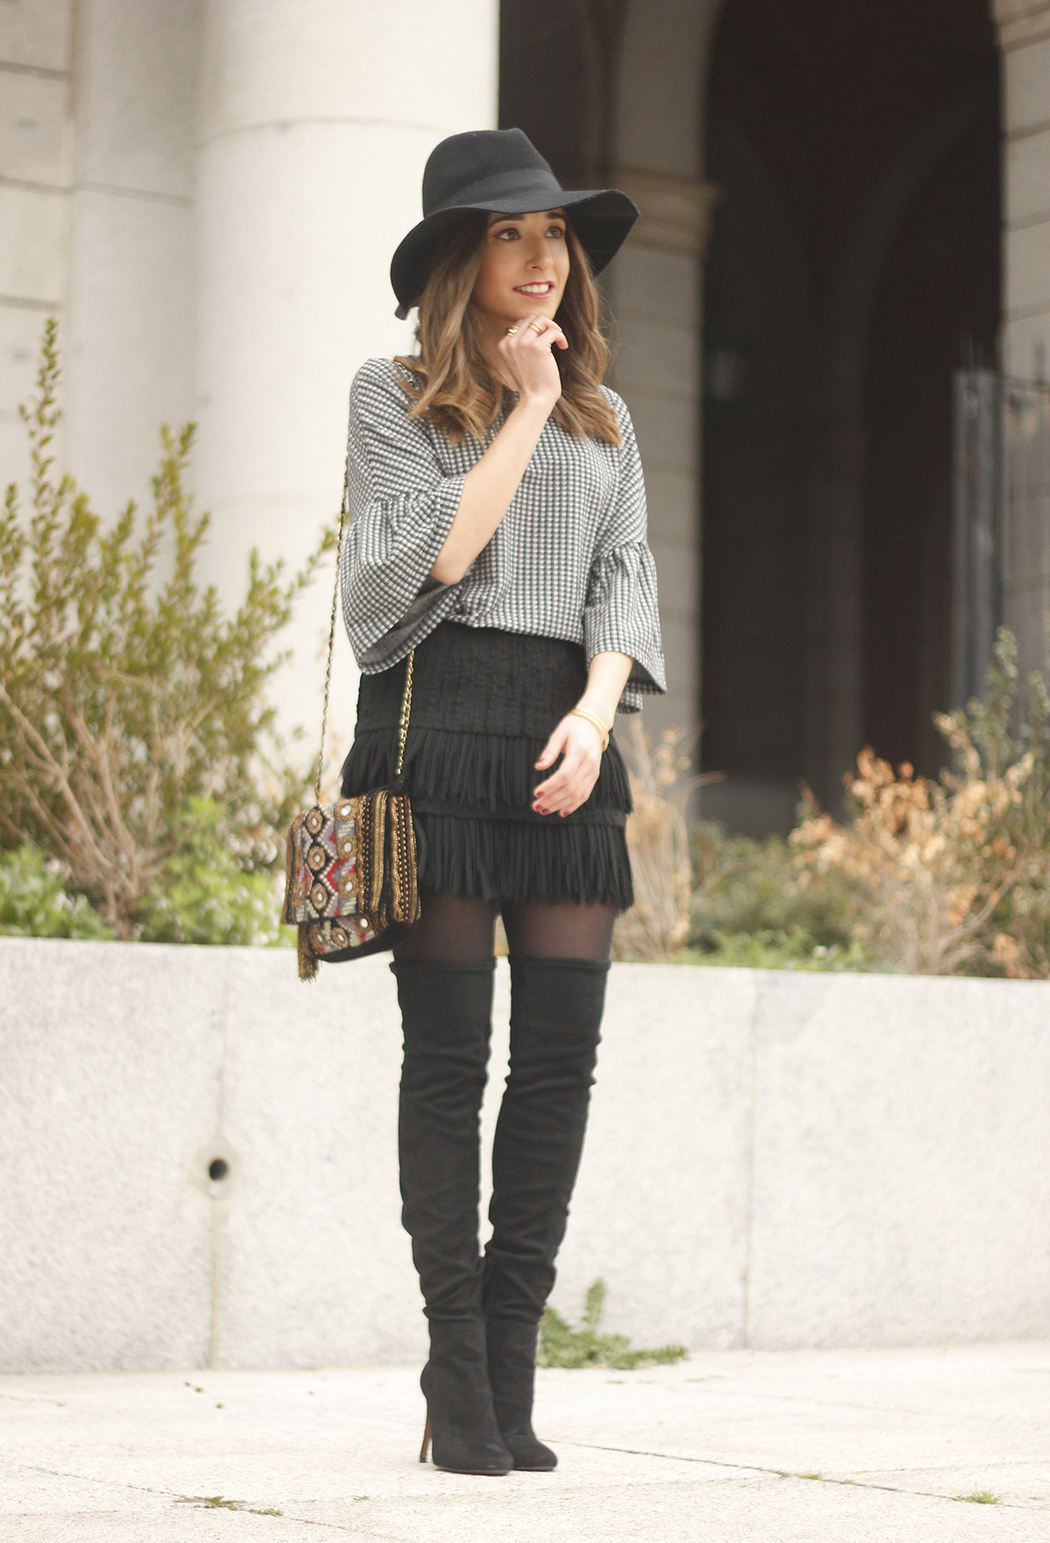 fringed skirt vichy shirt over the knee boots hat accesories bag outfit style10